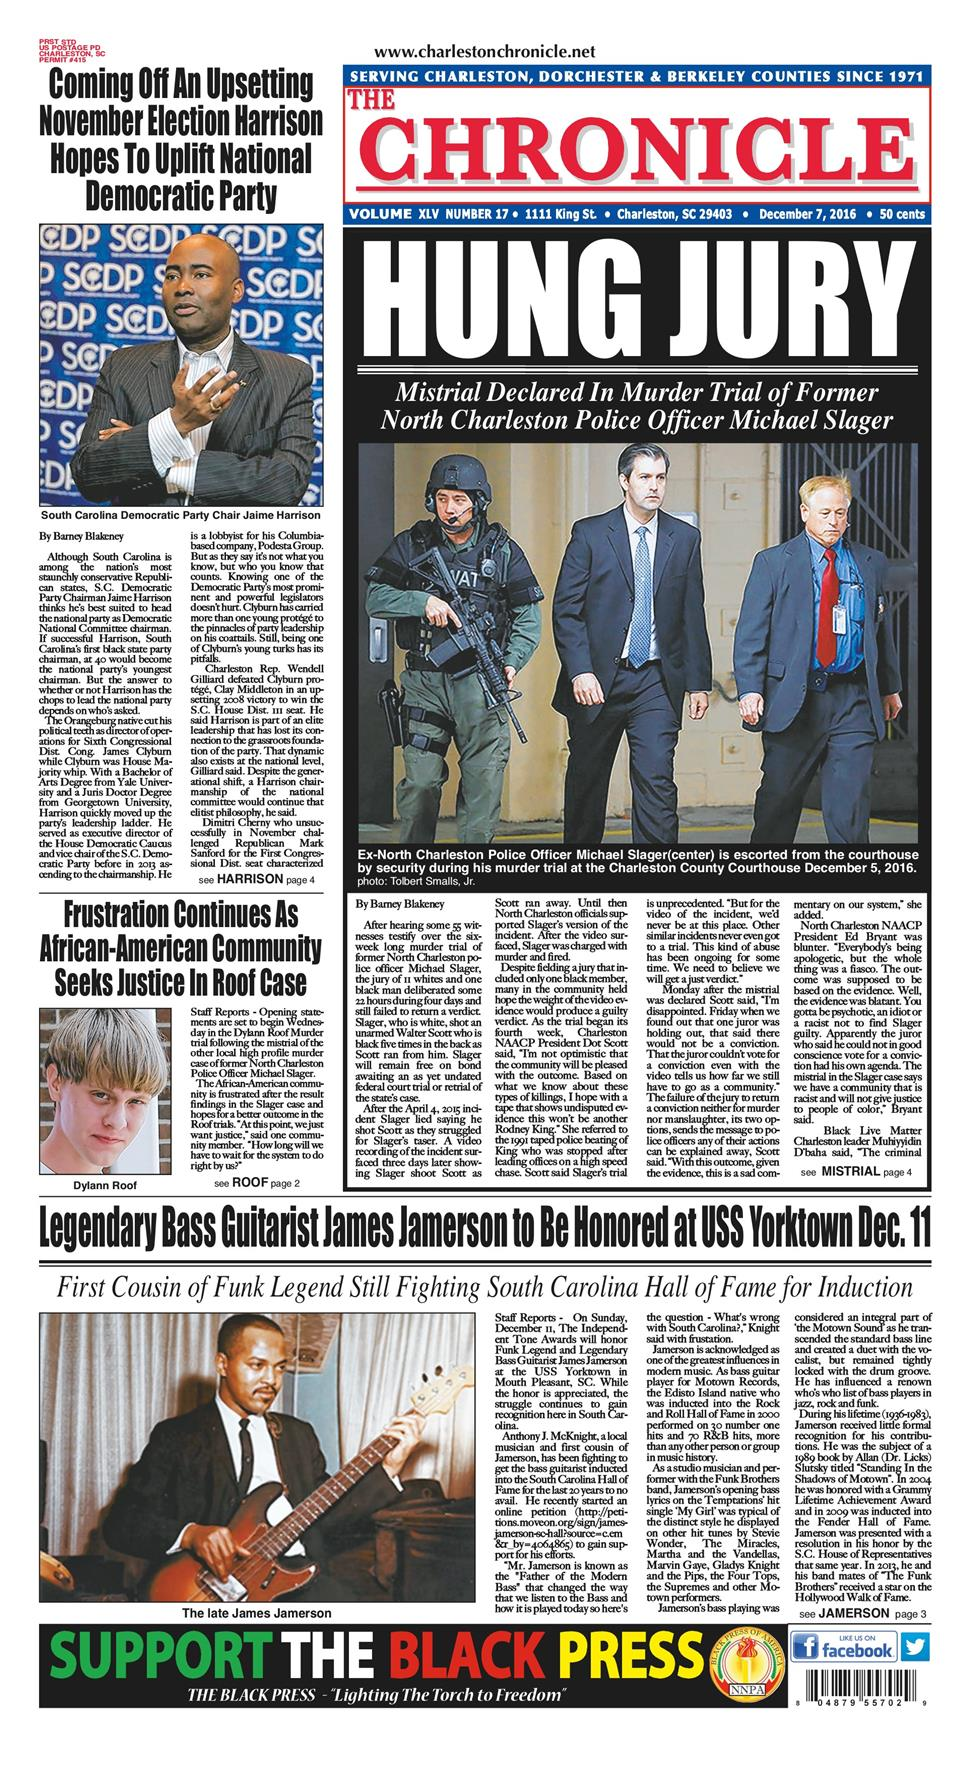 The Charleston Chronicle, an African American newspaper, reports Wednesday on the mistrial.